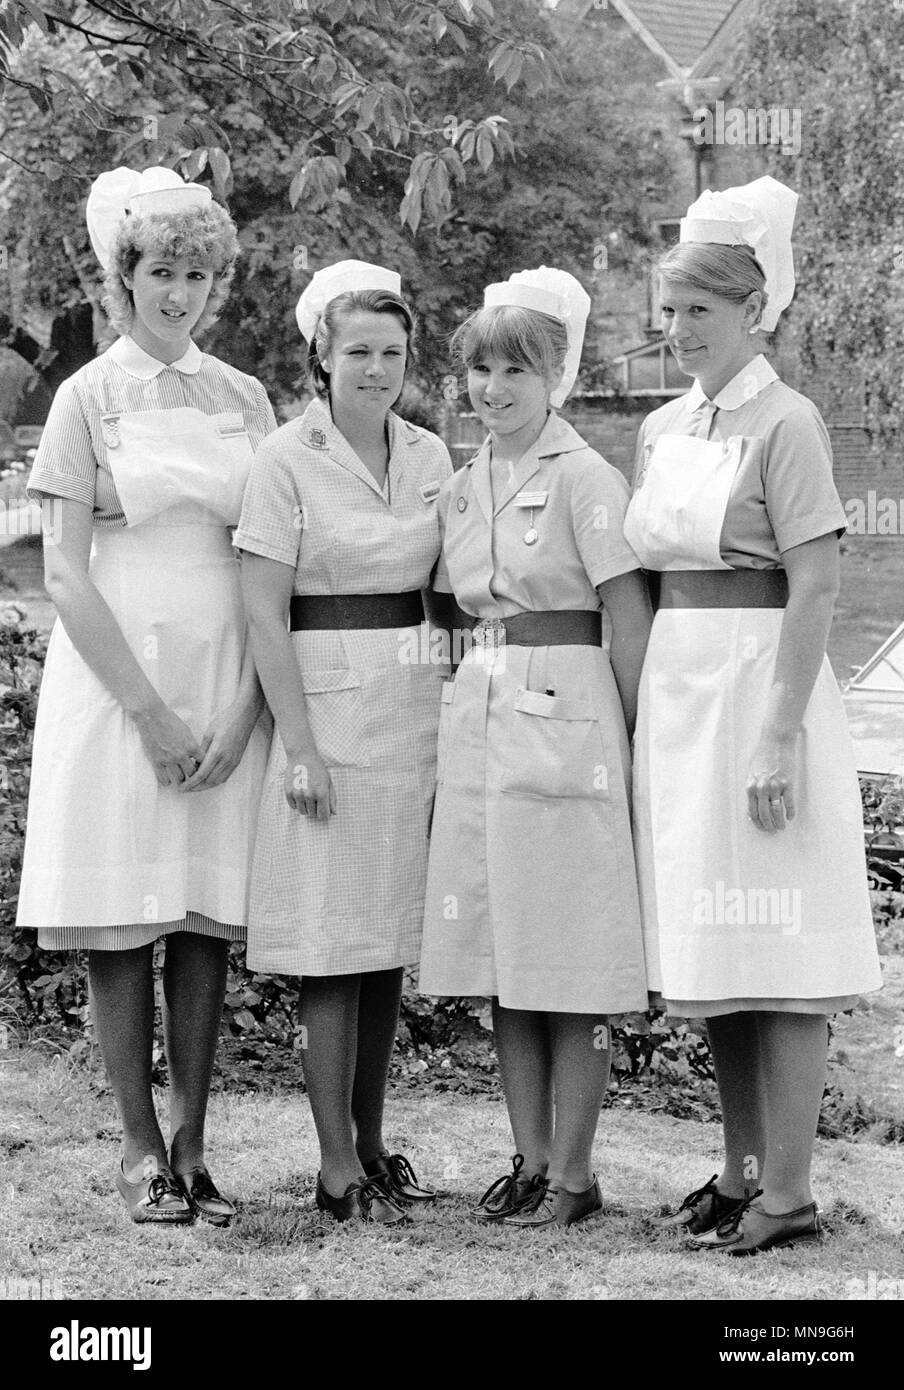 Fashion-conscious nurses working under the Merton and Sutton (Surrey) Health Authority have  designed a new uniform for themselves because they are fed up with the current drab uniform. The current uniform is worn by Student Nurse Karen Tapp (second left) and Staff Nurse Julia Peters (second right); while Student Nurse Sue Cross (l) and Staff Nurse Susan Sowden (r) wear the new uniform for their respective grades at Queen Mary's Hospital for Children in Carshalton, London. - Stock Image